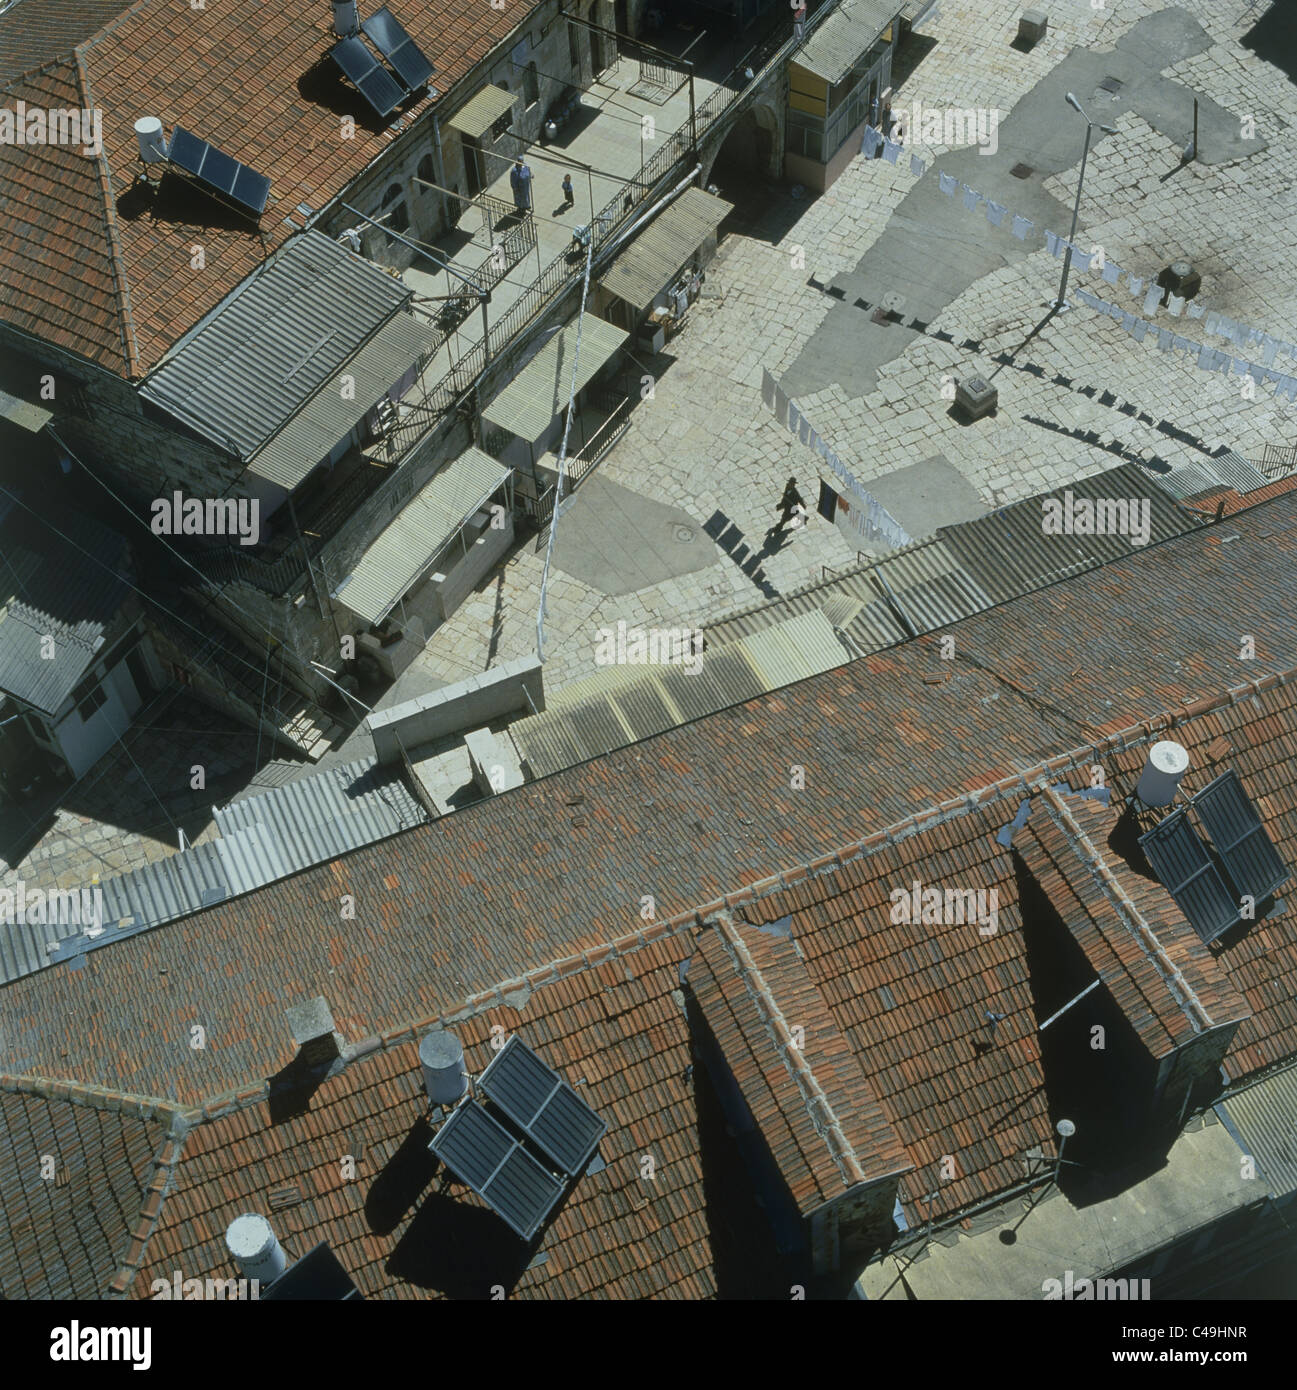 Aerial photograph of the Triangular courtyard in Me'ah Shearim in Jerusalem - Stock Image